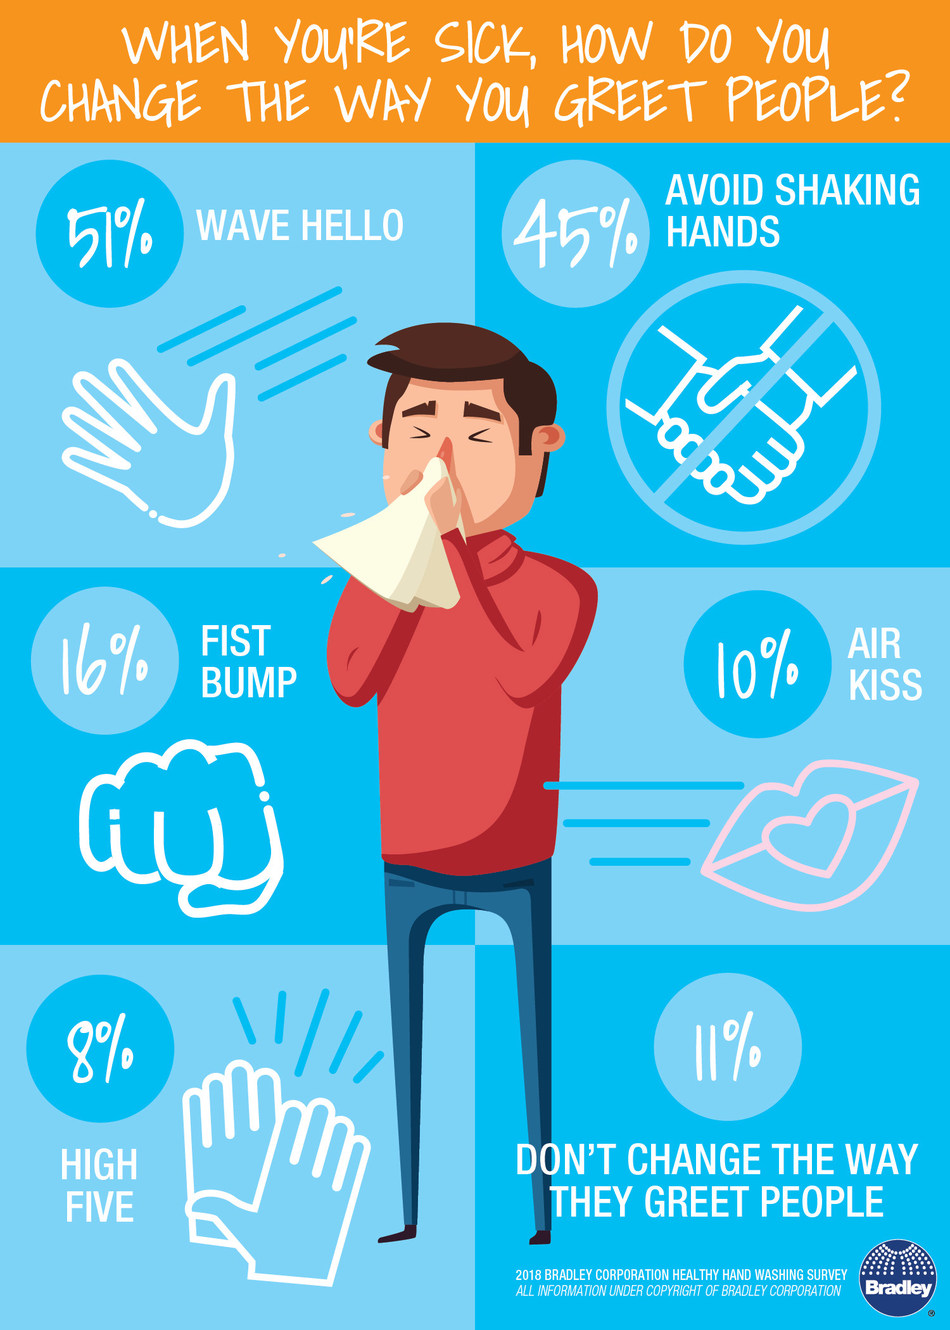 According to the Healthy Hand Washing Survey from Bradley Corp., Americans change the way they greet people when they're sick. 51% simply wave hello while others avoid shaking hands or use alternate greetings.